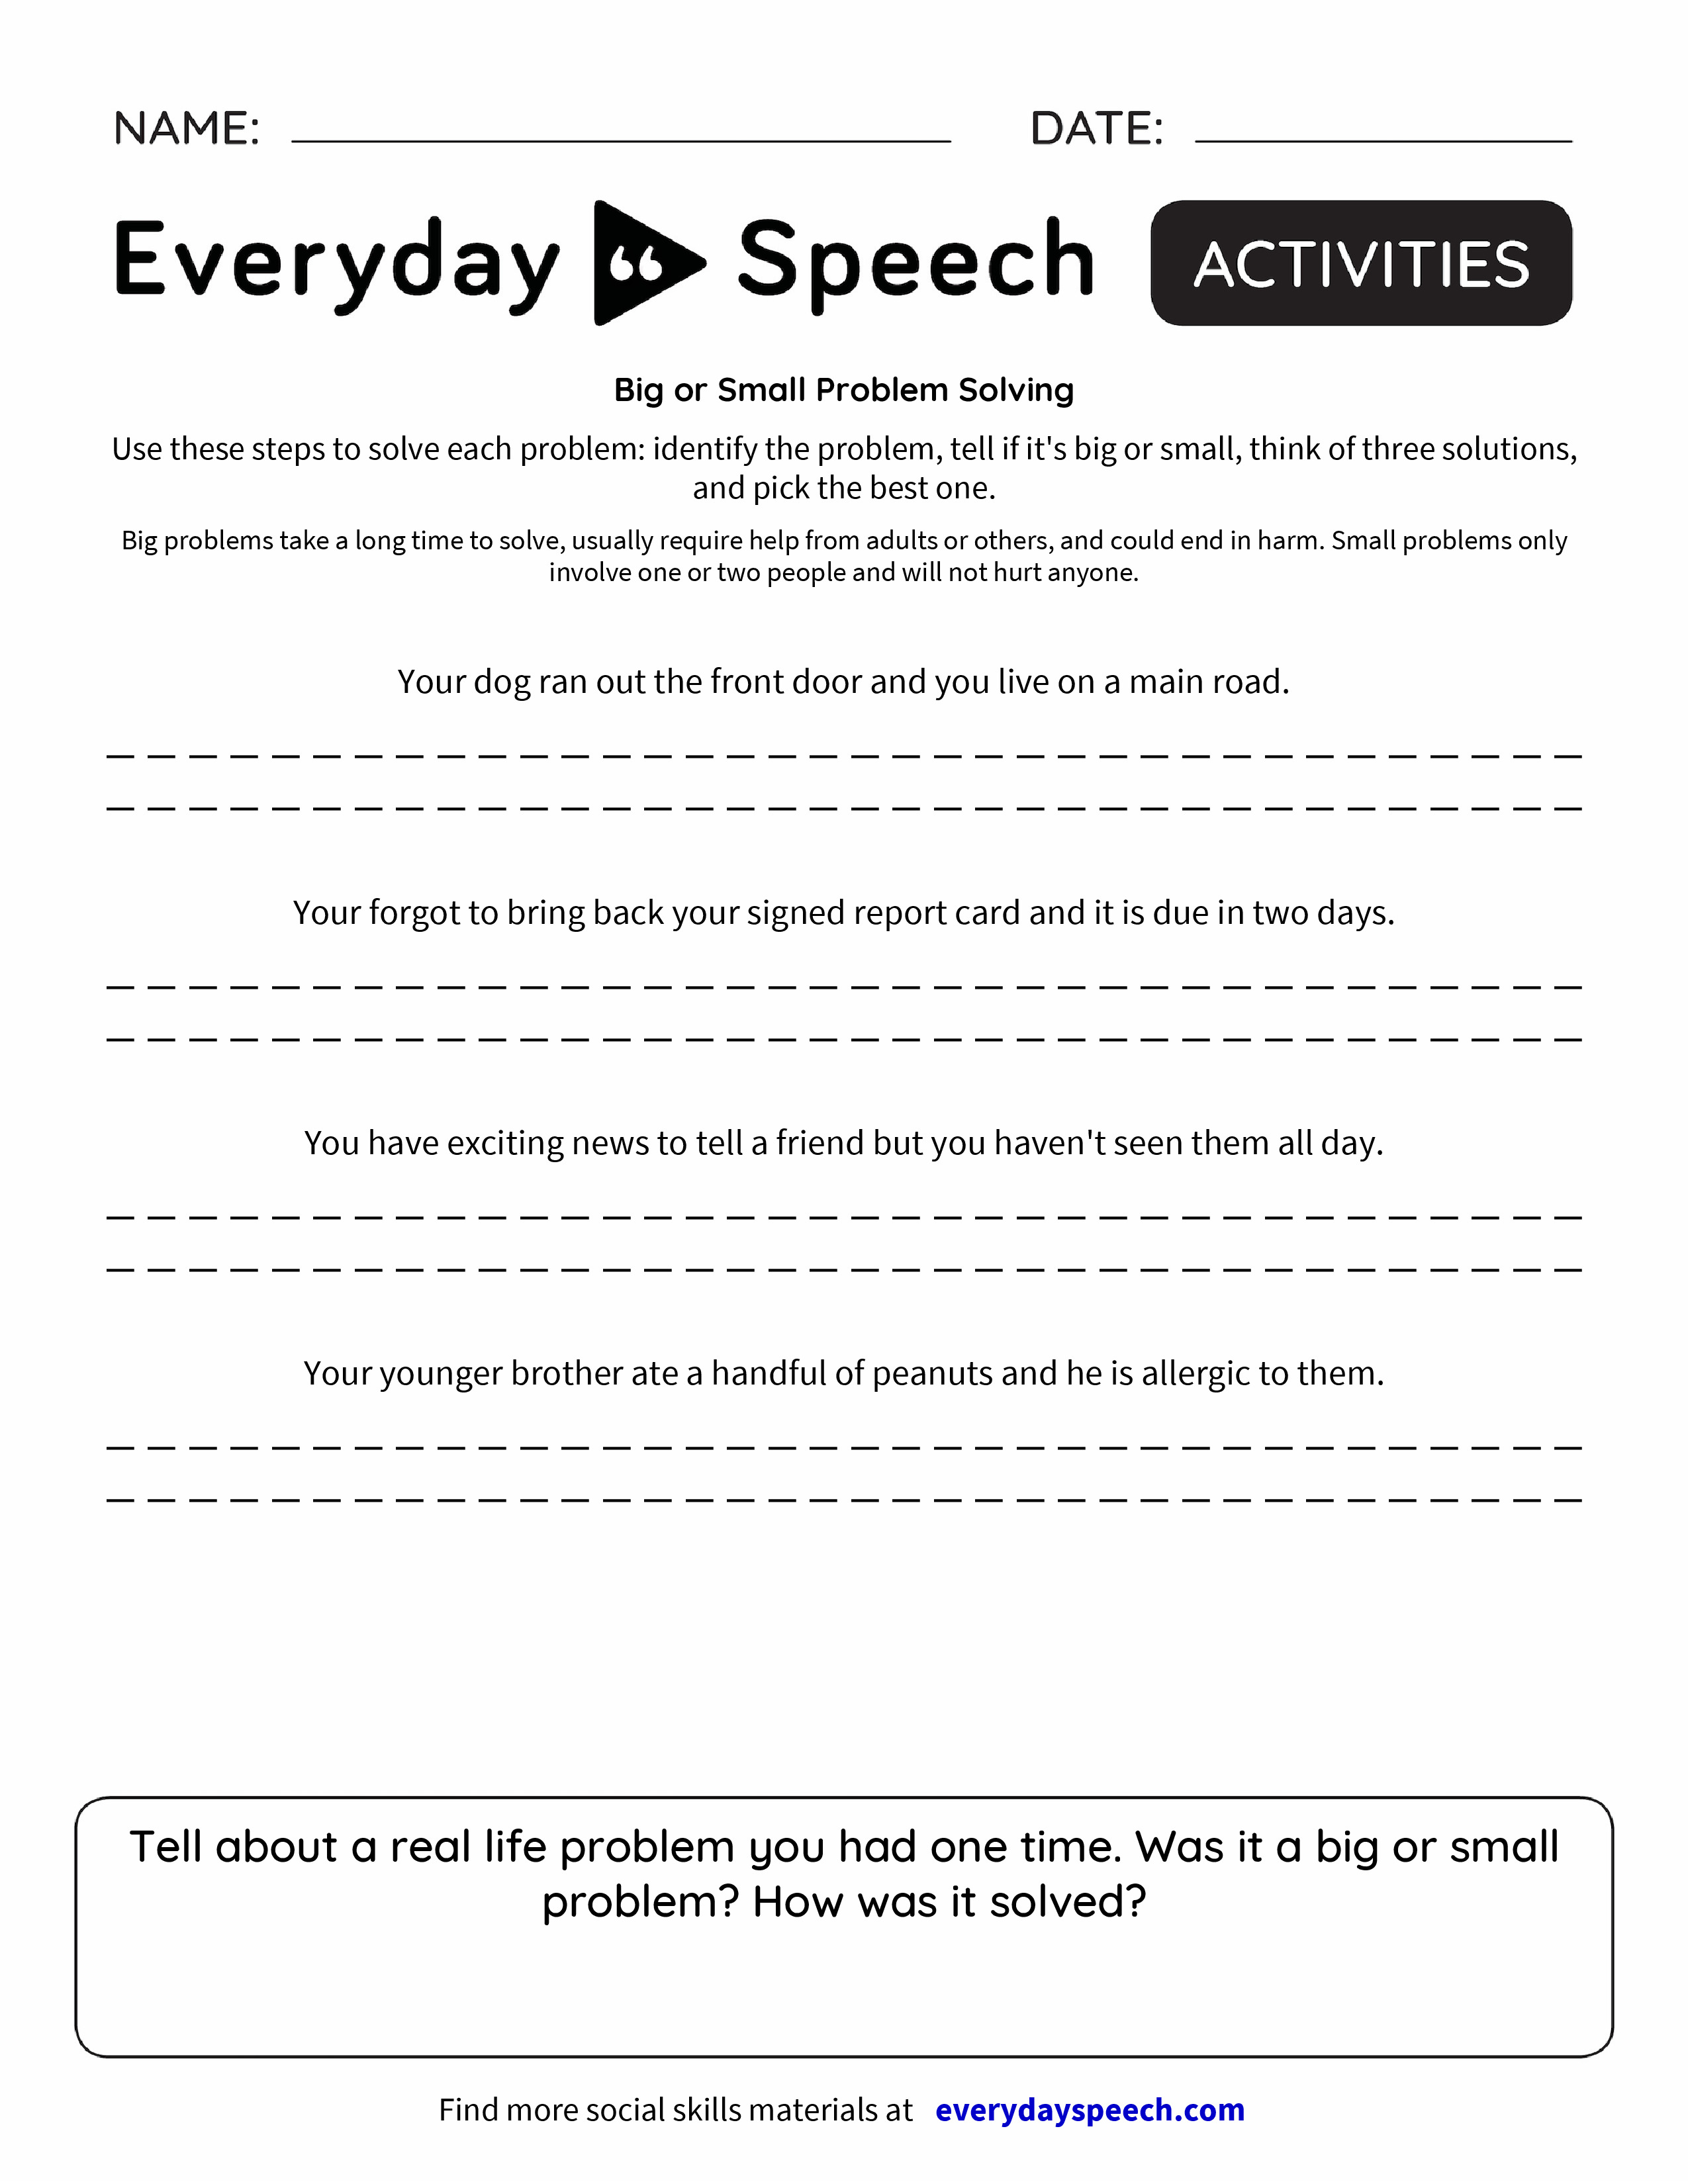 Worksheets Problem Solving Worksheets For Adults big or small problem solving everyday speech preview